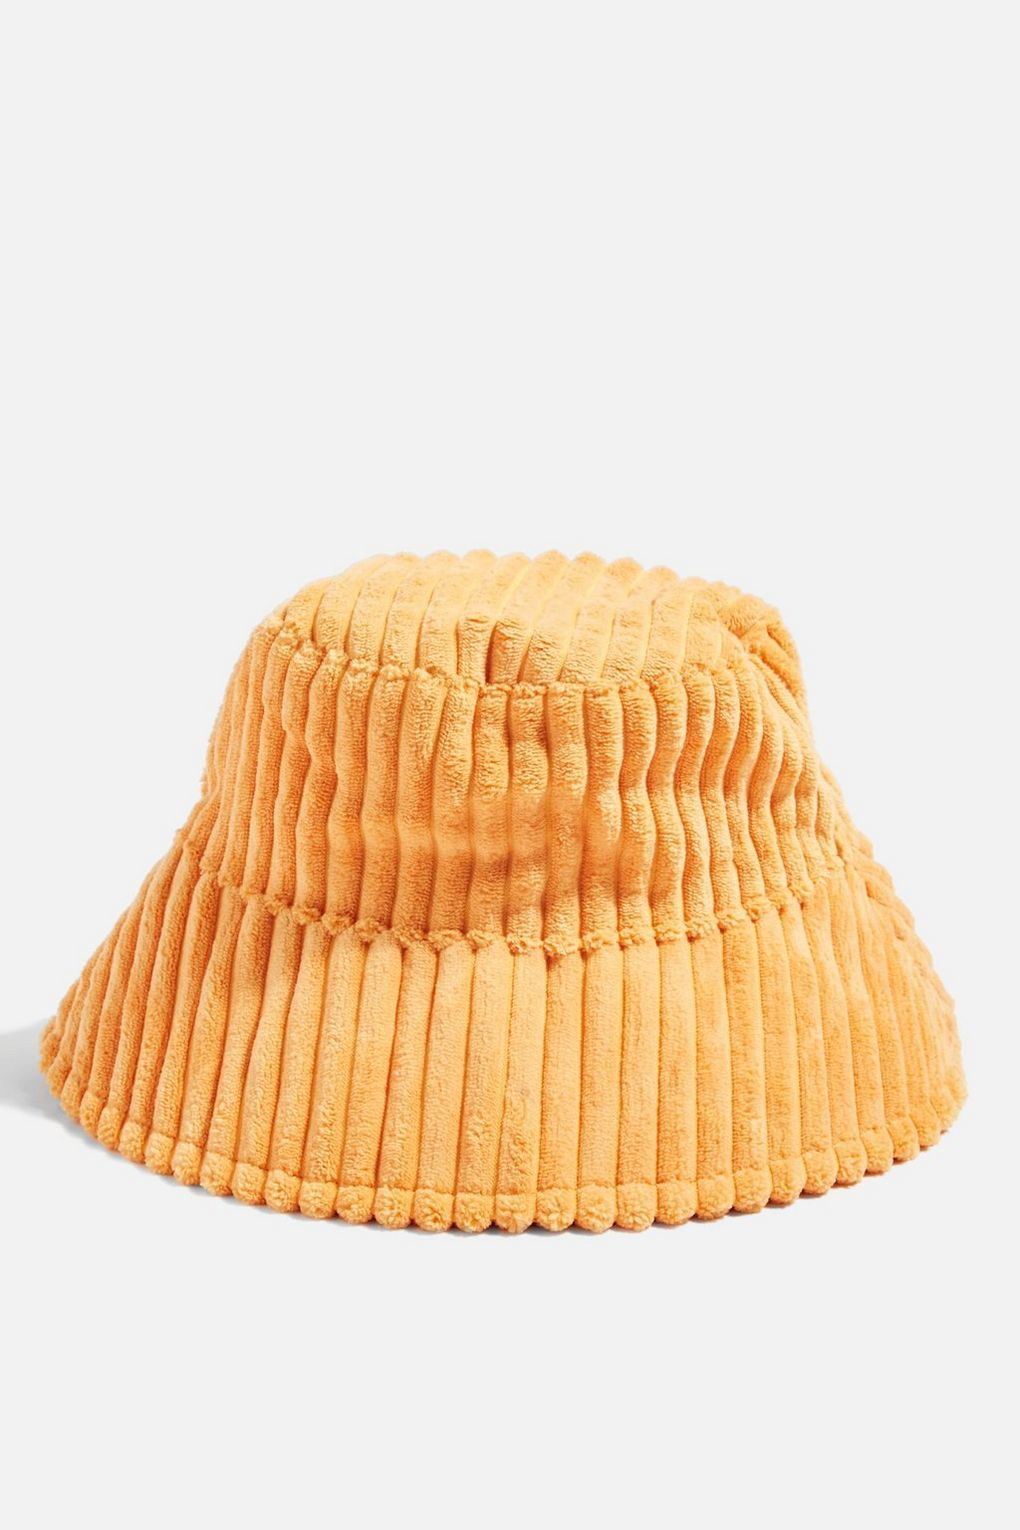 00af78421f7a6 Chunky Cord Bucket Hat - New In Fashion - New In - Topshop